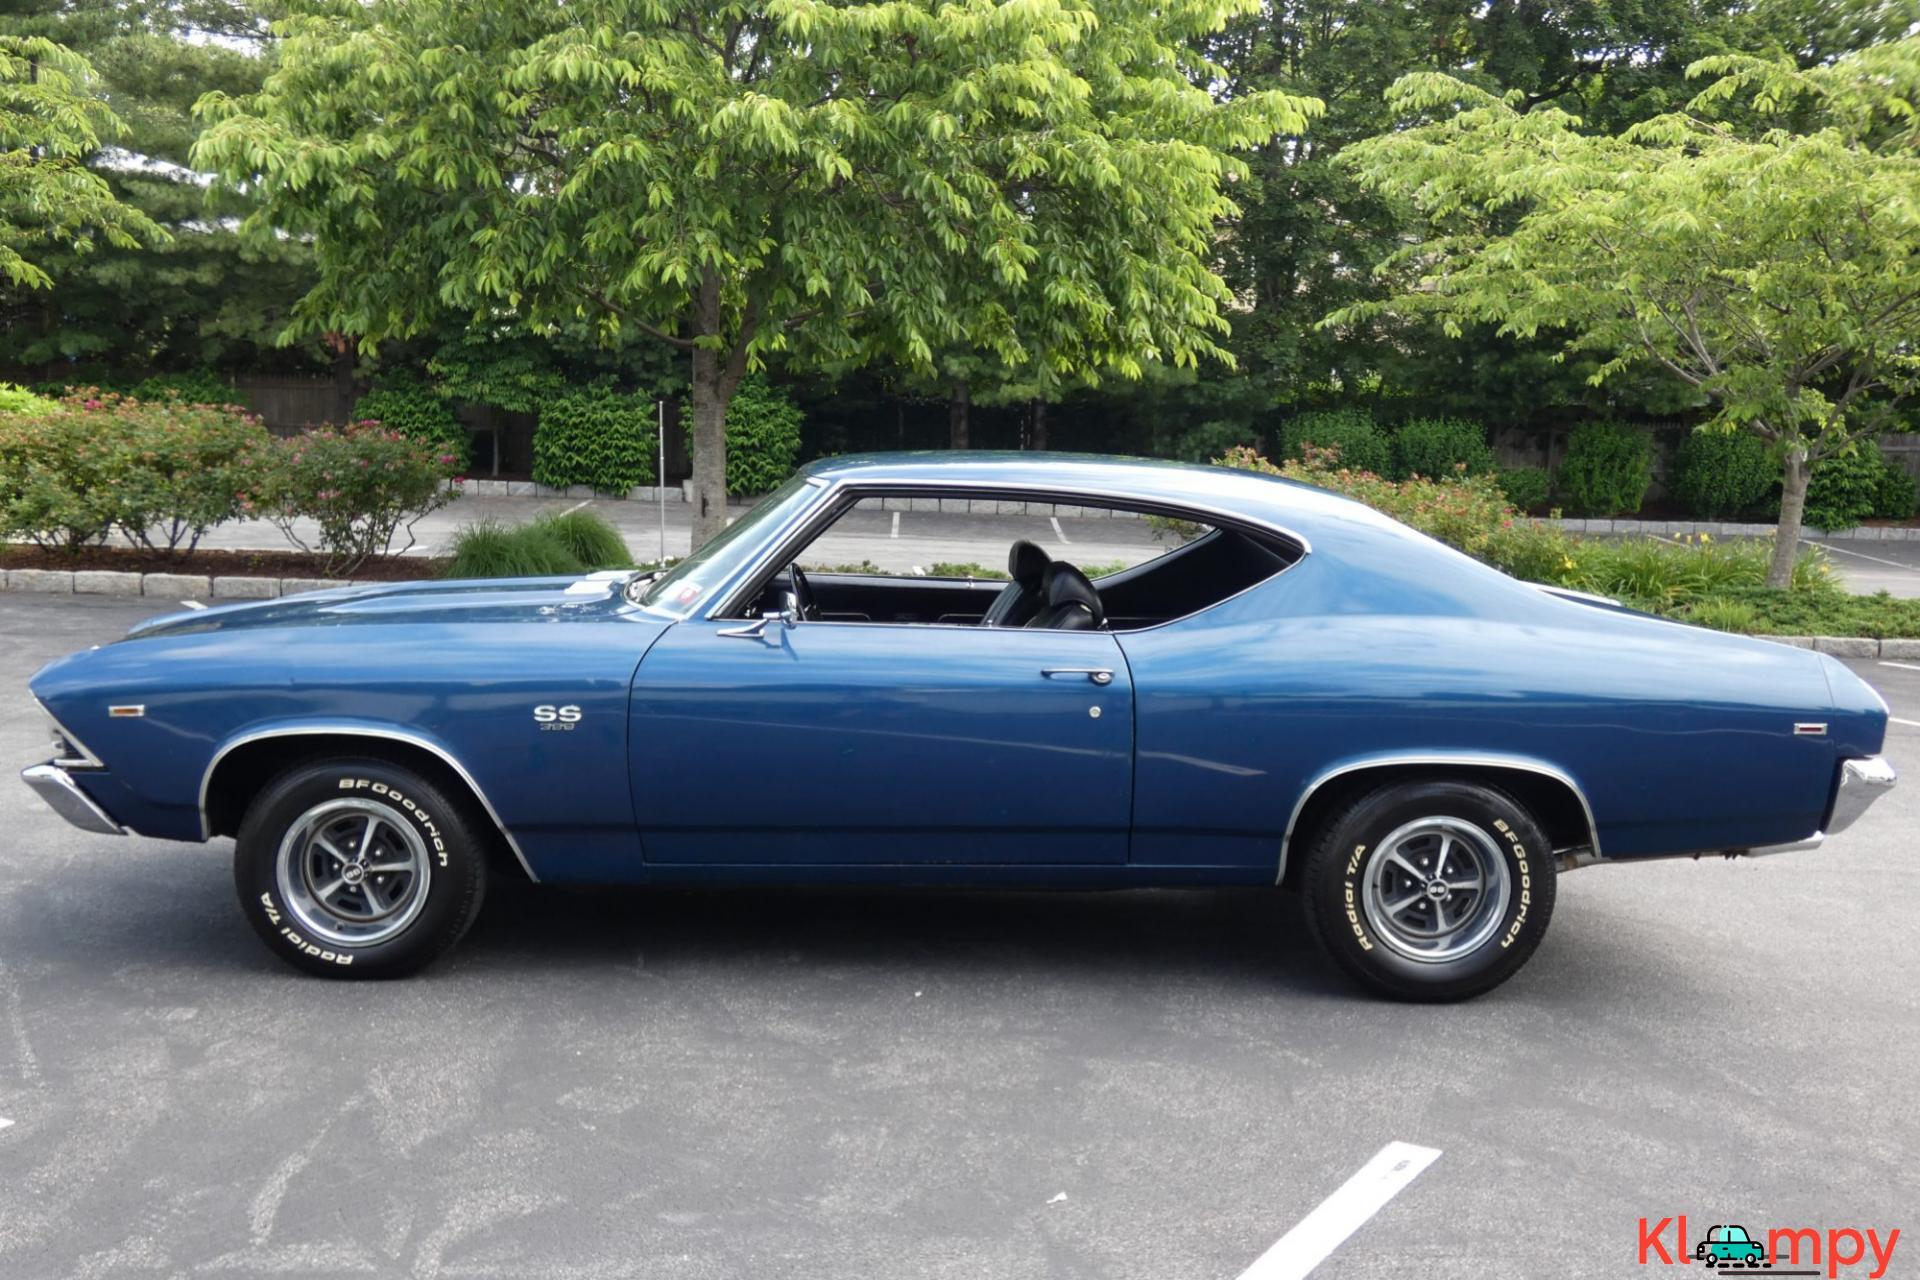 1969 Chevrolet Chevelle SS 396 Sport Coupe - 2/27